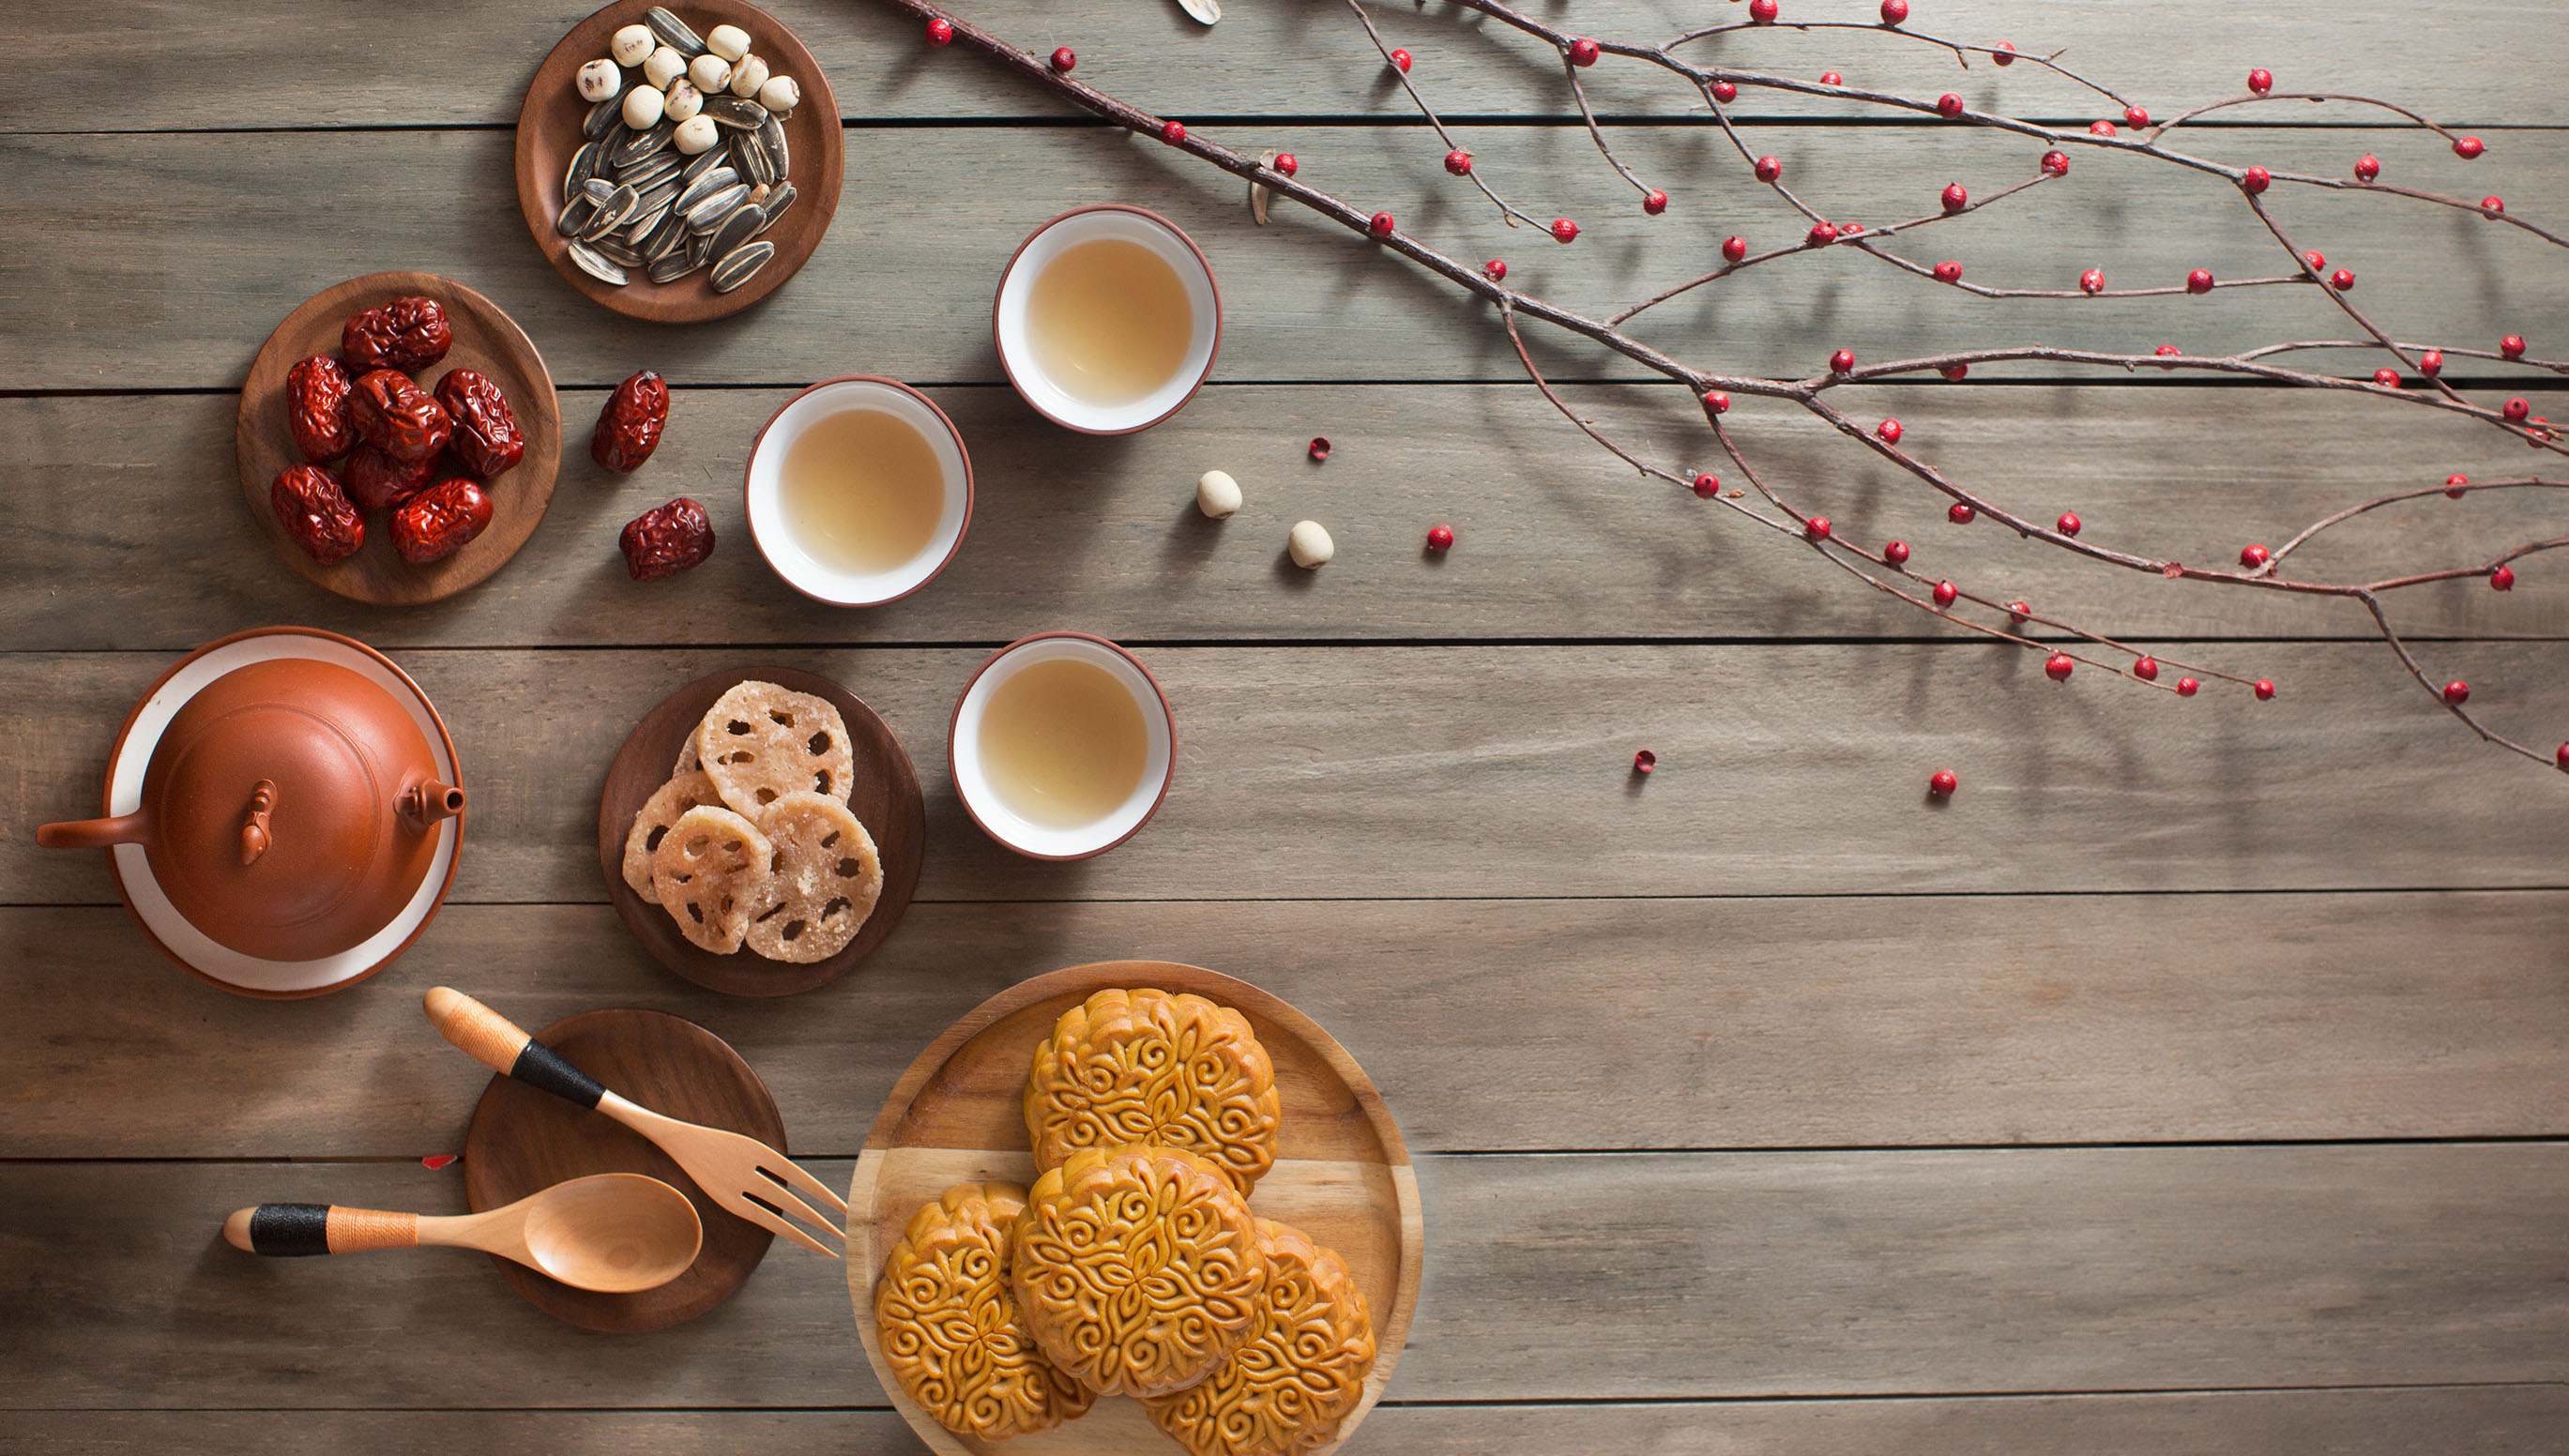 H5 Ways to Spend Mid-Autumn Festival with Family